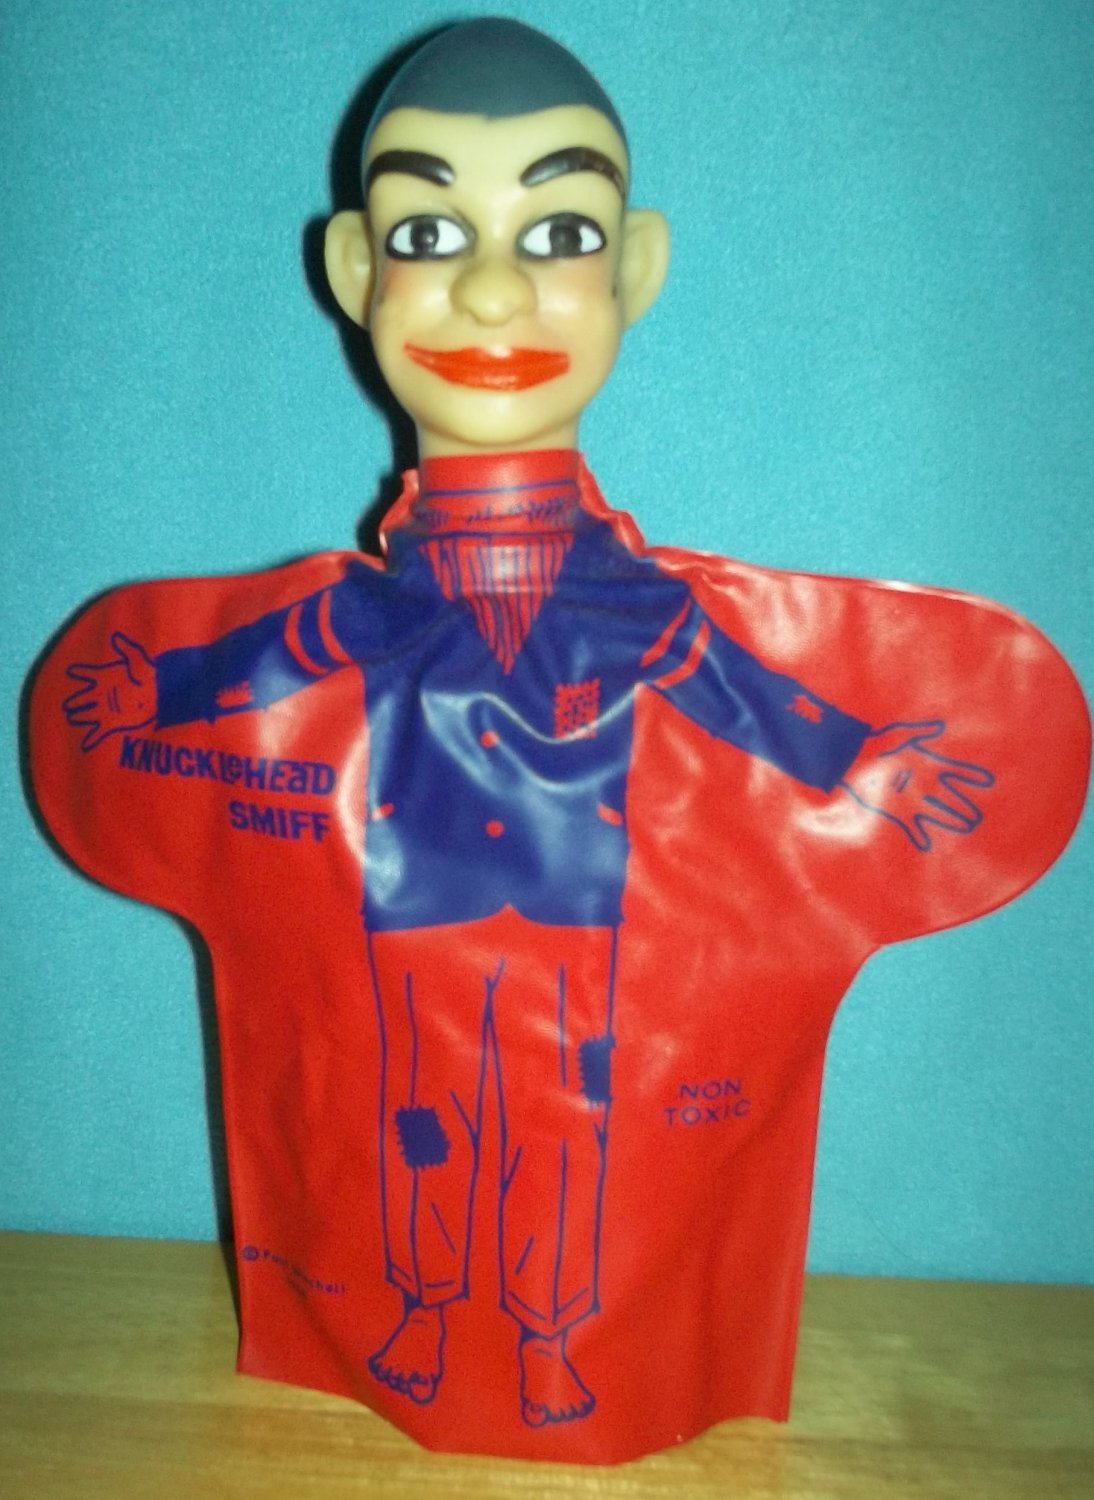 *SIGNED* PAUL WINCHELL VINTAGE KNUCKLEHEAD SMIFF HAND PUPPET DOLL 1966